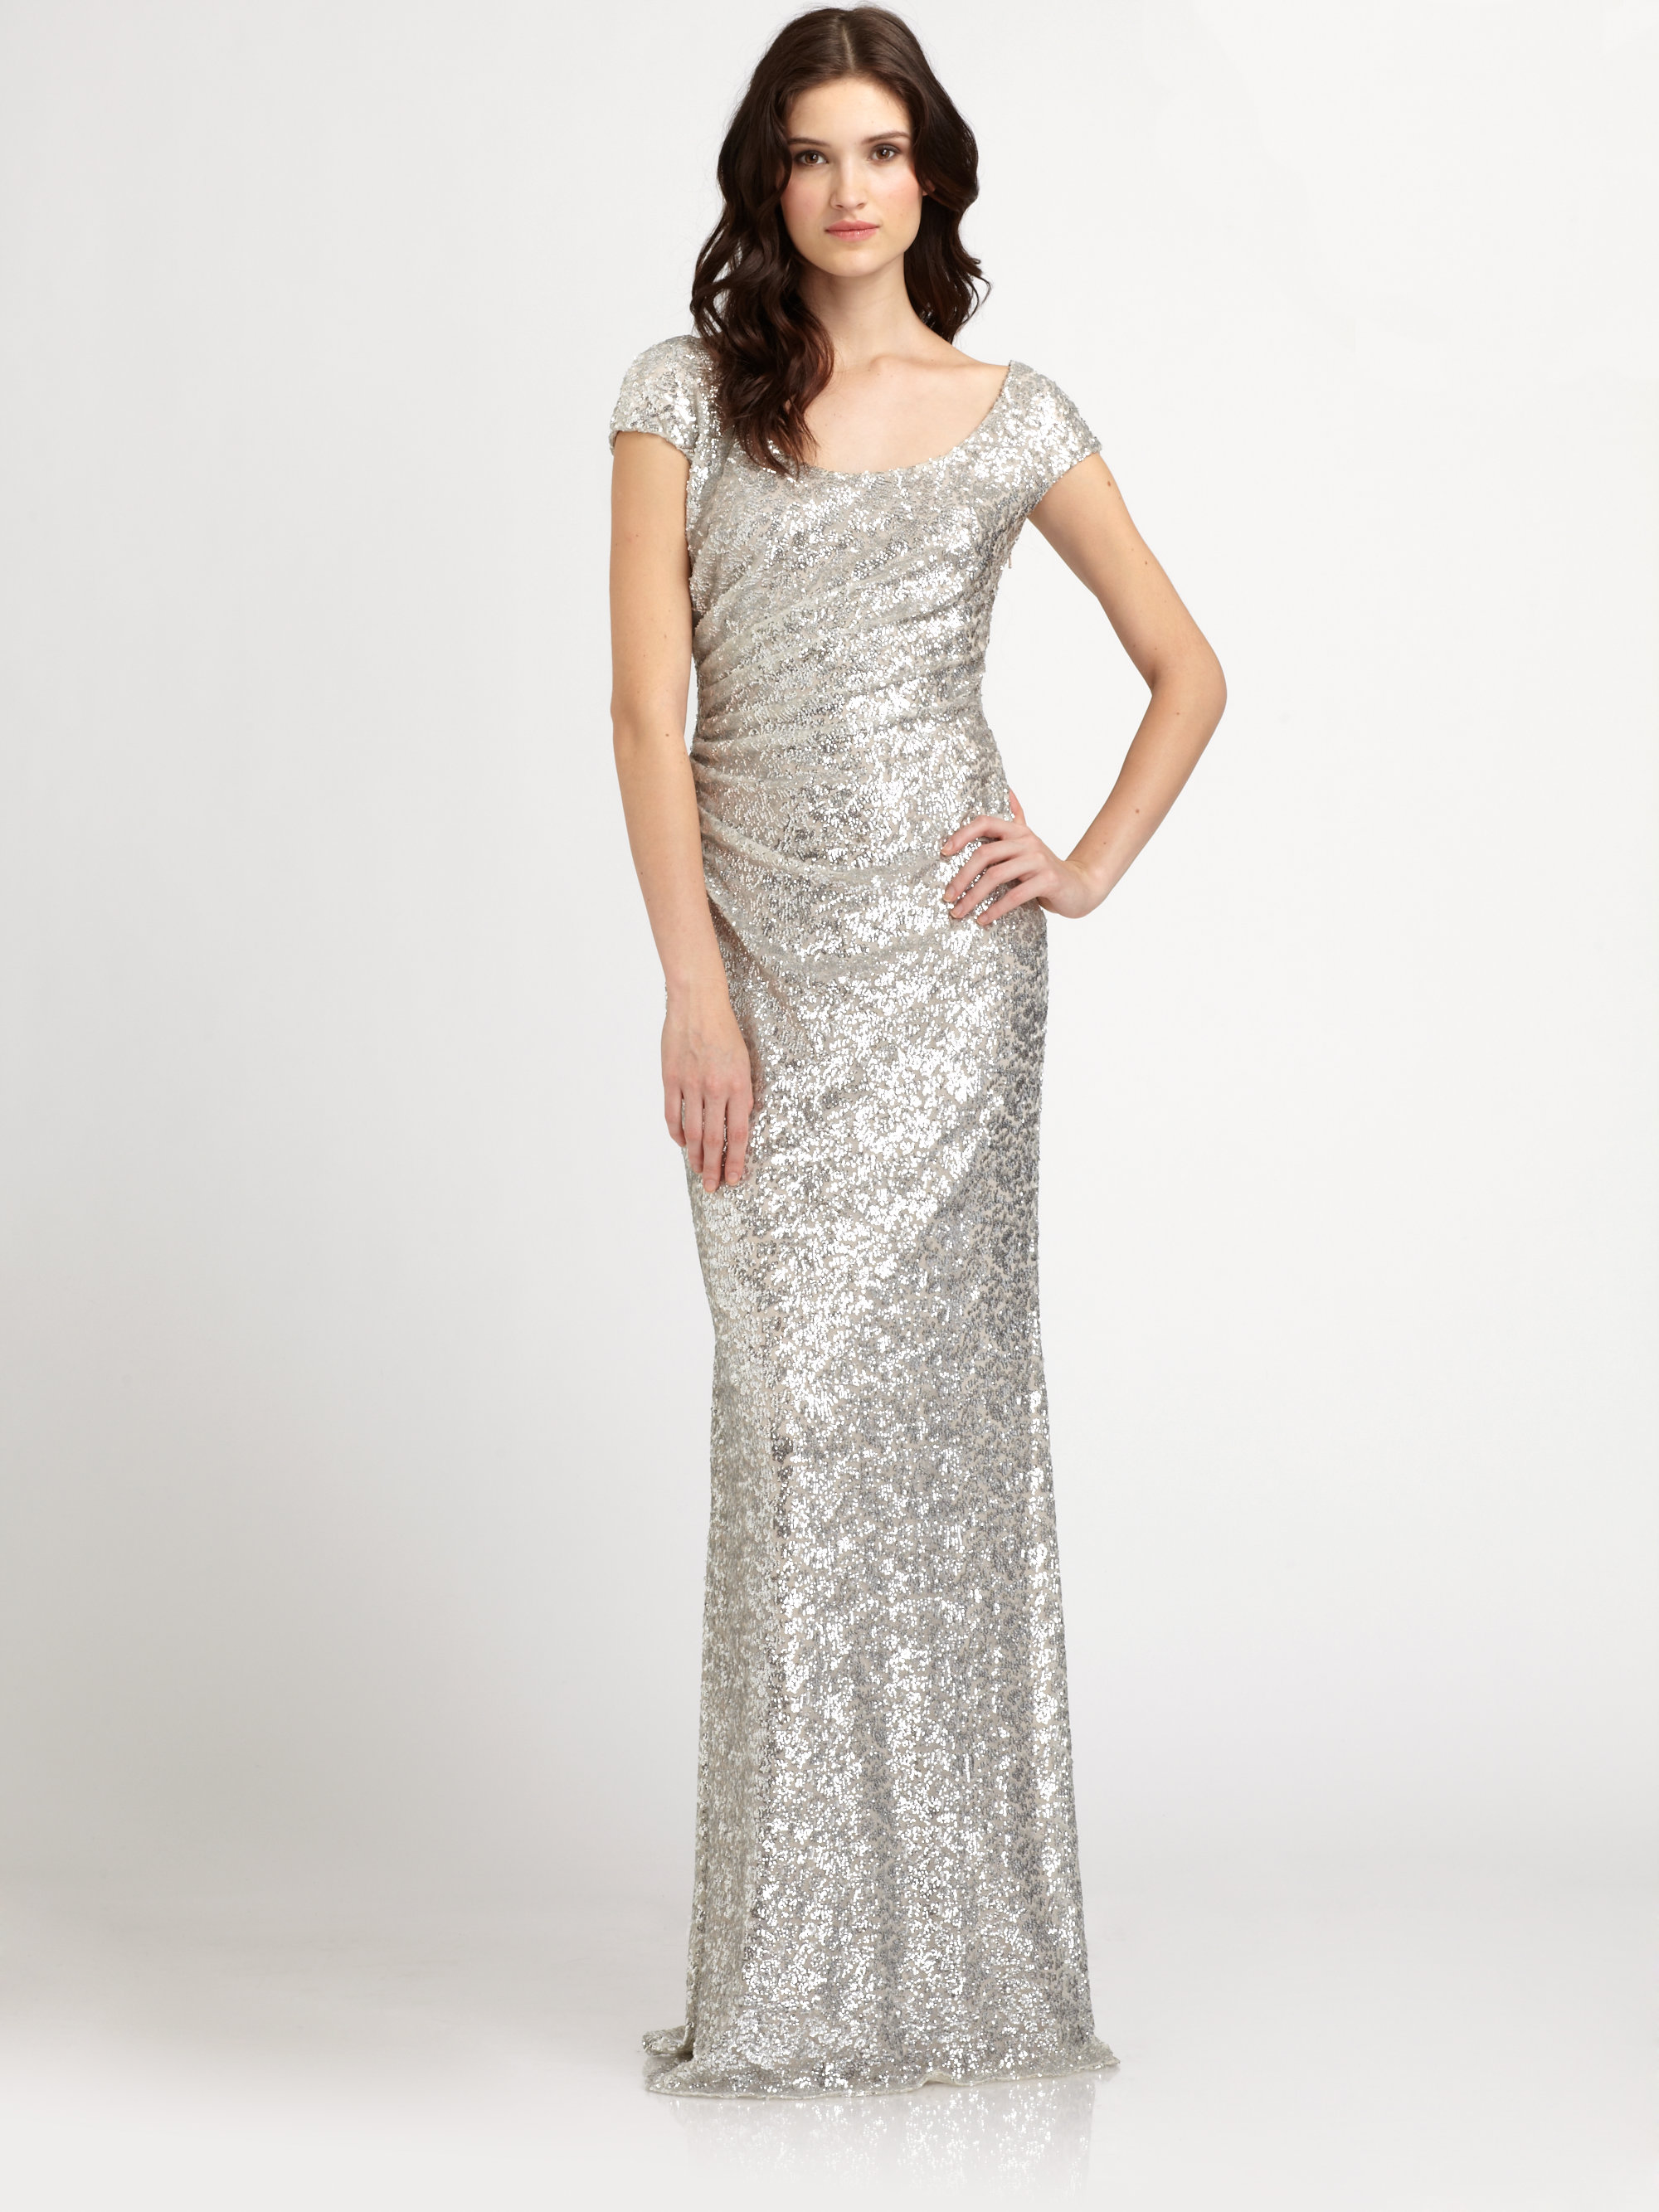 Lyst - David Meister Sequined Gown in Metallic